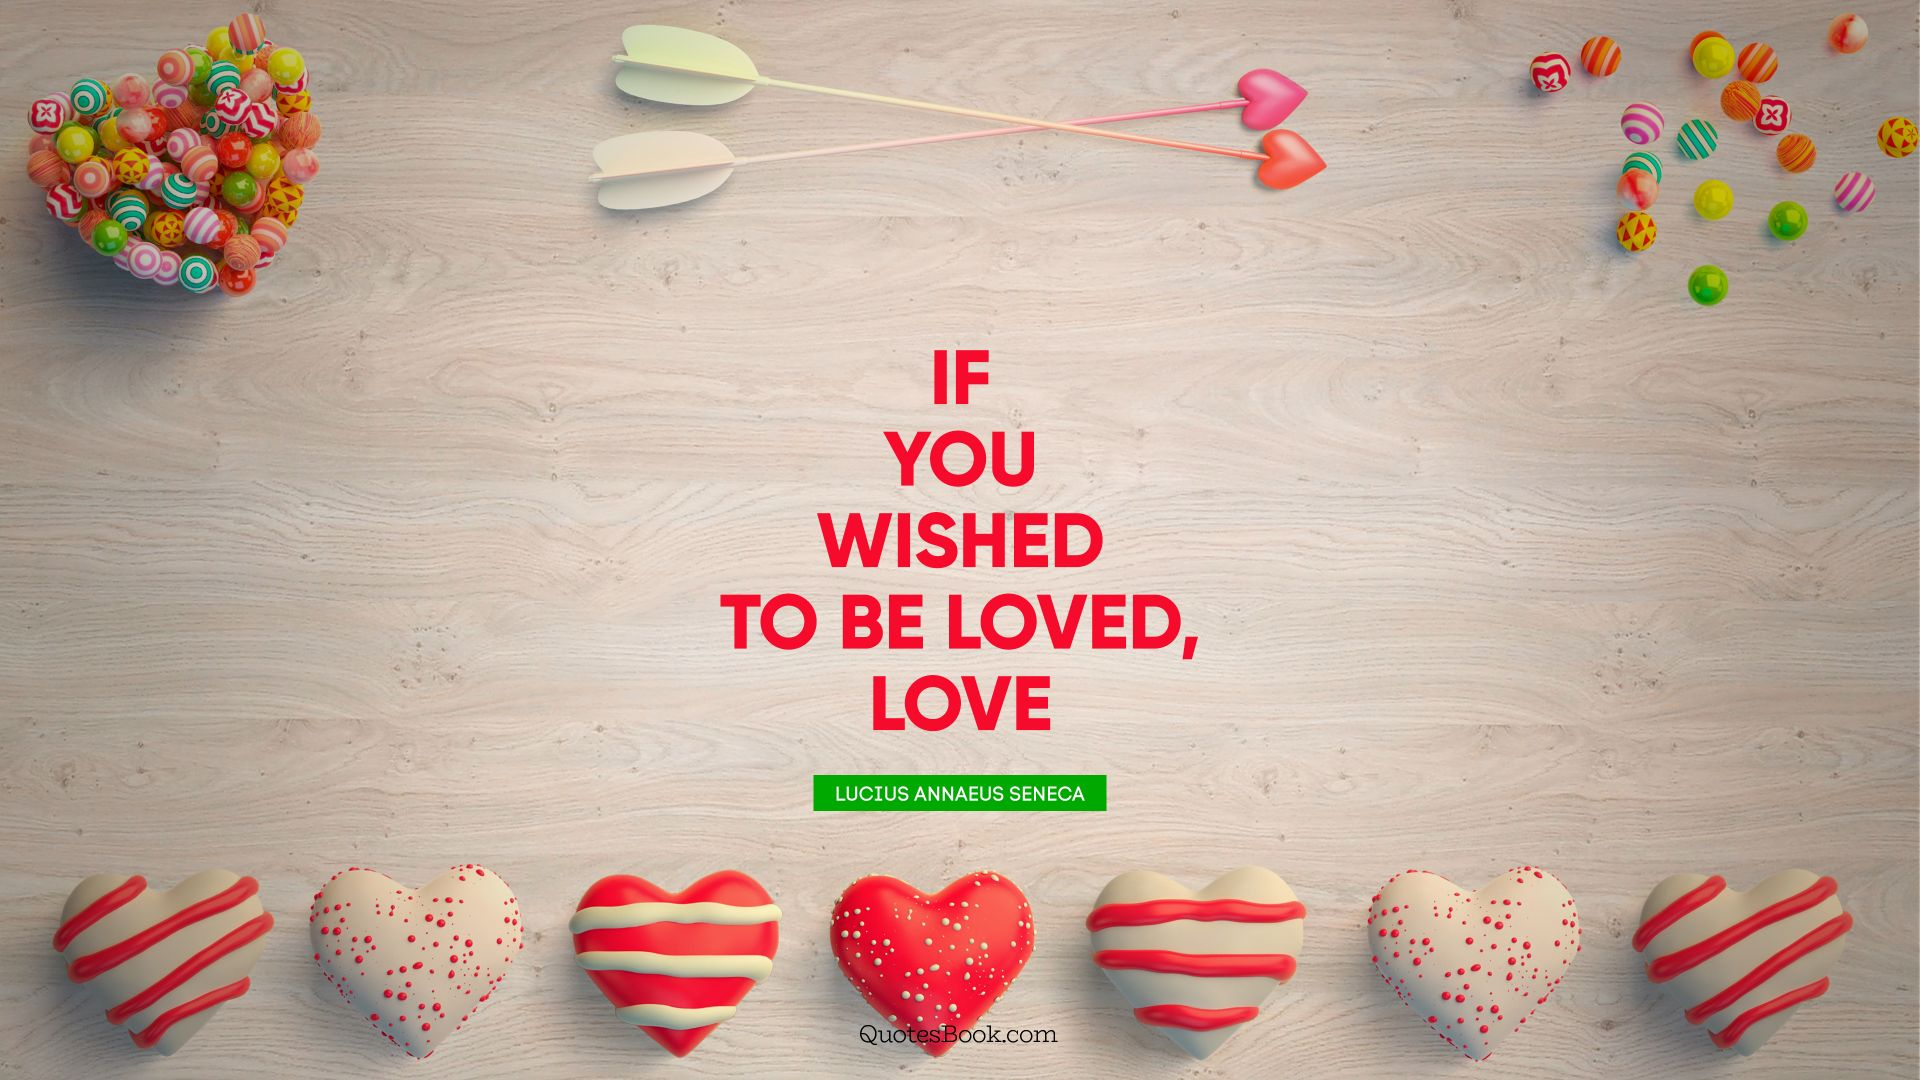 If you wished to be loved, love. - Quote by Lucius Annaeus Seneca